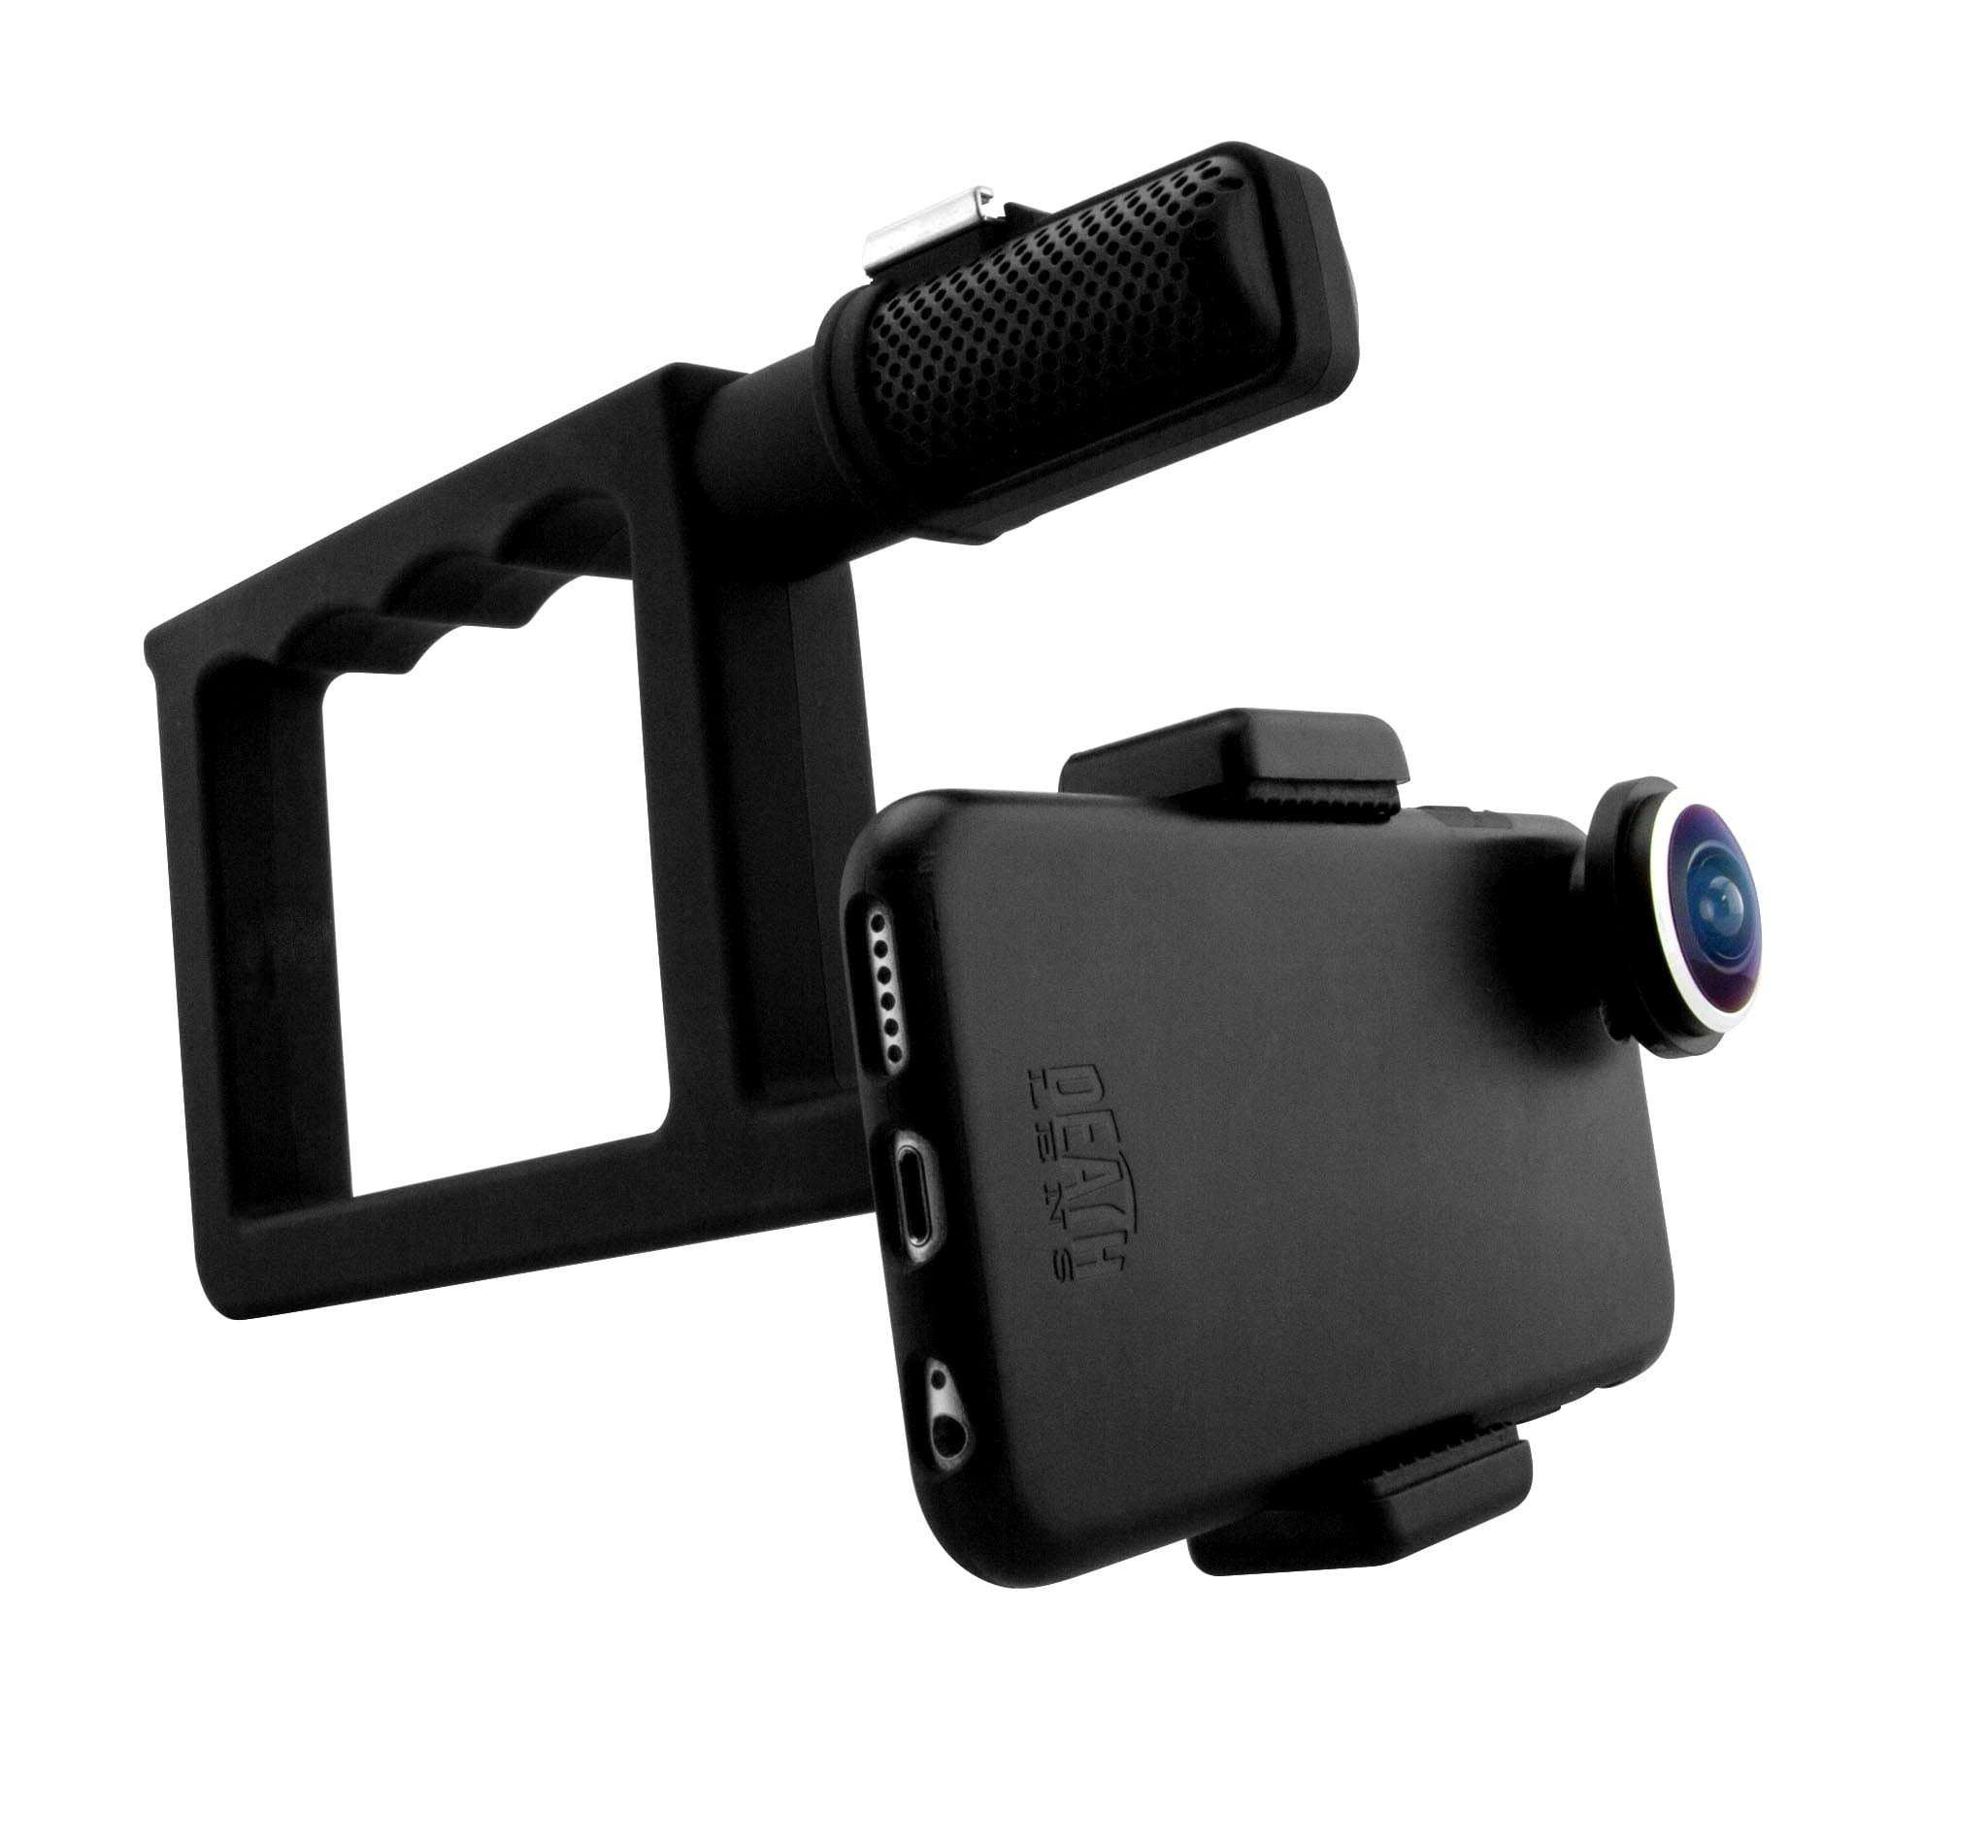 Death Lens Grip 2.0 VX Handle - Counter Balance - Stabilize footage, Go Pro Mount, Rubber Coated Grip, iPhone, Samsung Galaxy and Other Smartphones by DEATH LENS